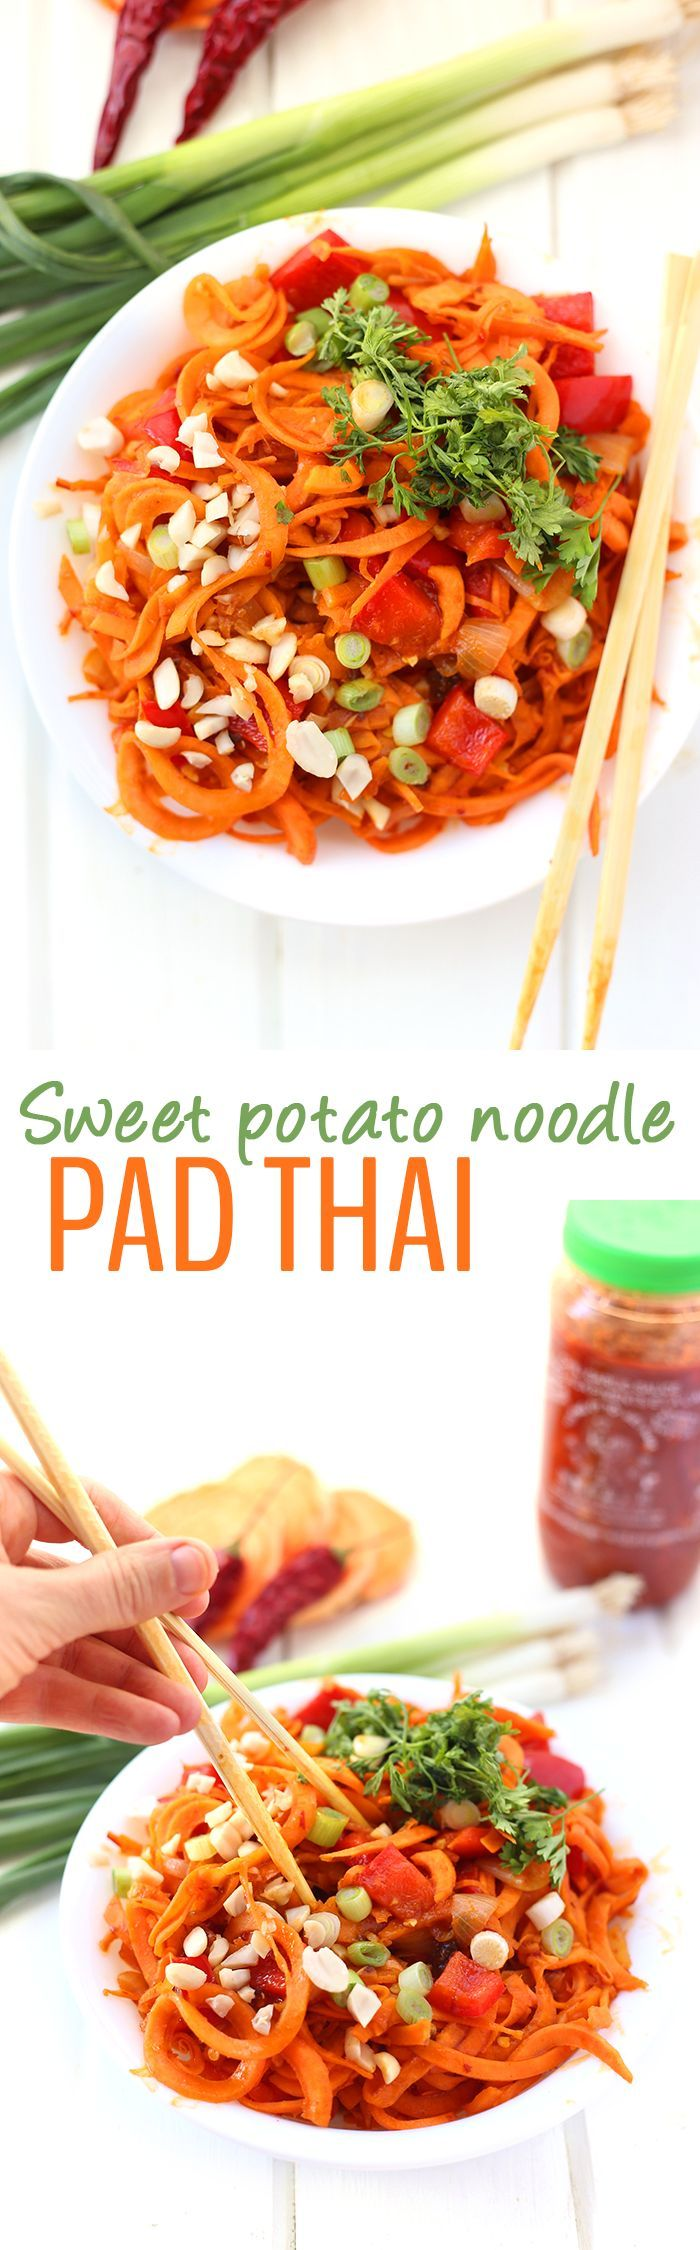 Swap the rice noodles for sweet potato in this healthy Sweet Potato Noodle Pad Thai. This tangy and spicy thai recipe makes an easy 30-minute meal for weekday dinners!